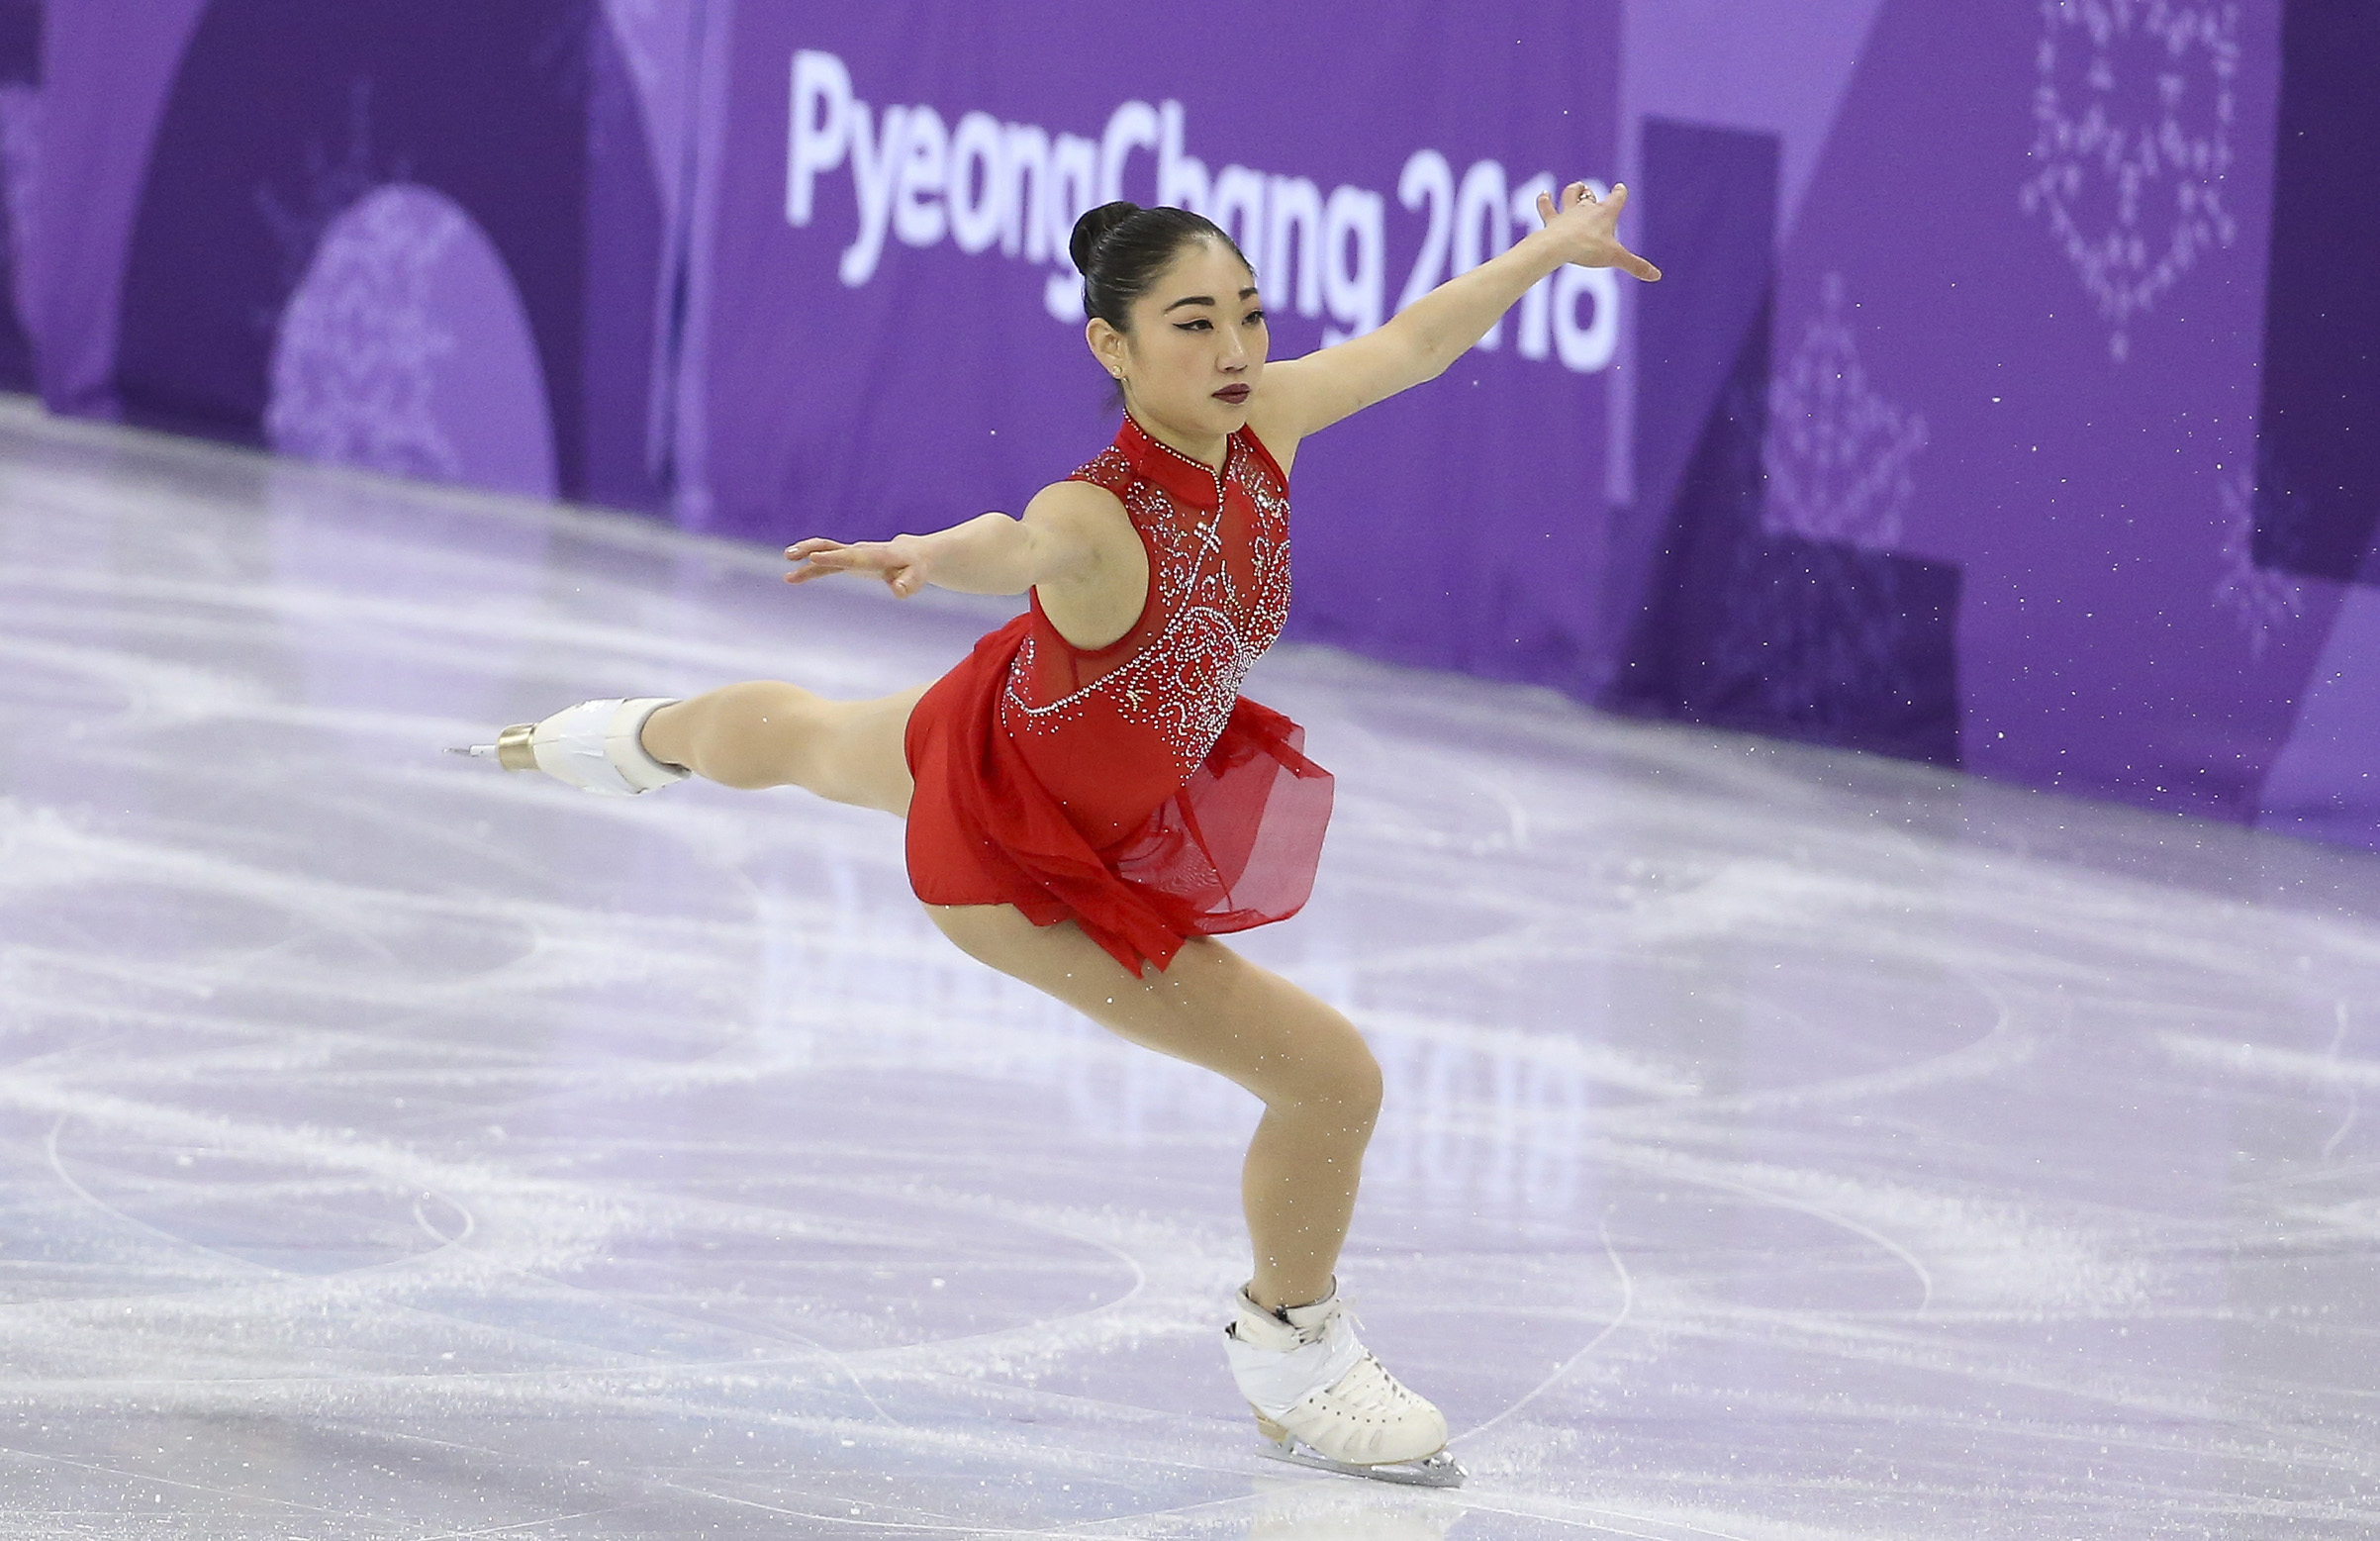 Mirai Nagasu of USA competes in the Ladies Free Skating during the Figure Skating Team Event on day three of the PyeongChang 2018 Winter Olympic Game.